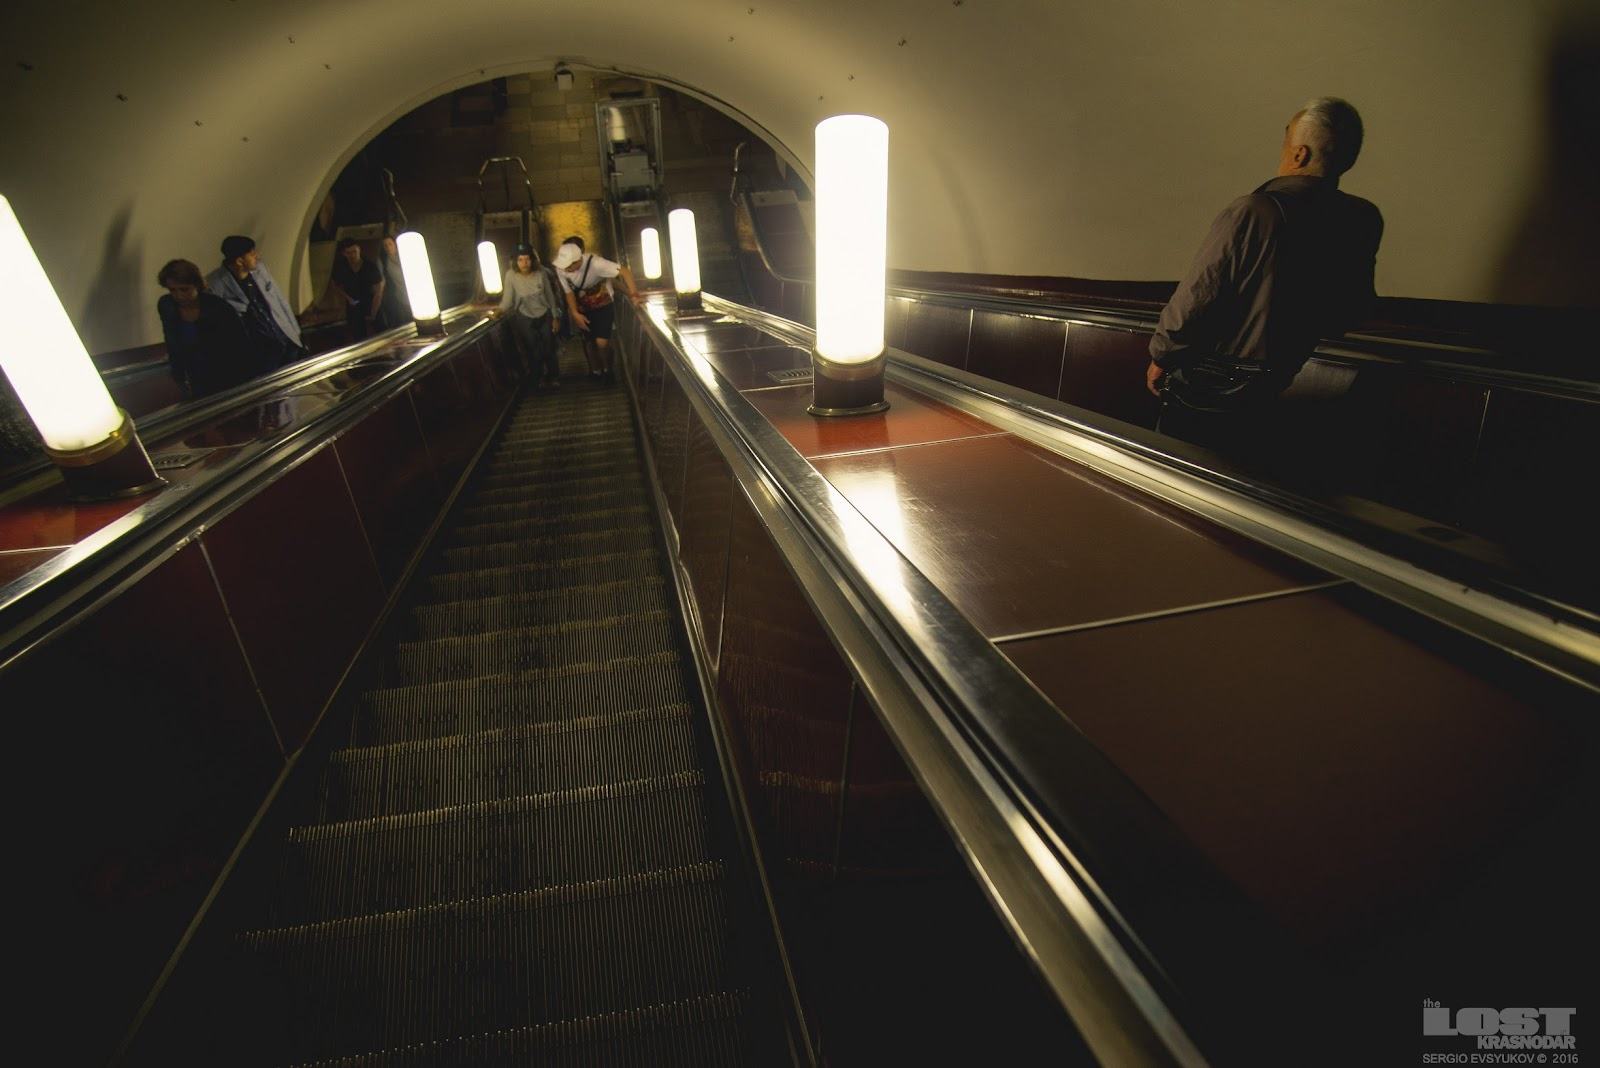 L'escalator de la station Moscou